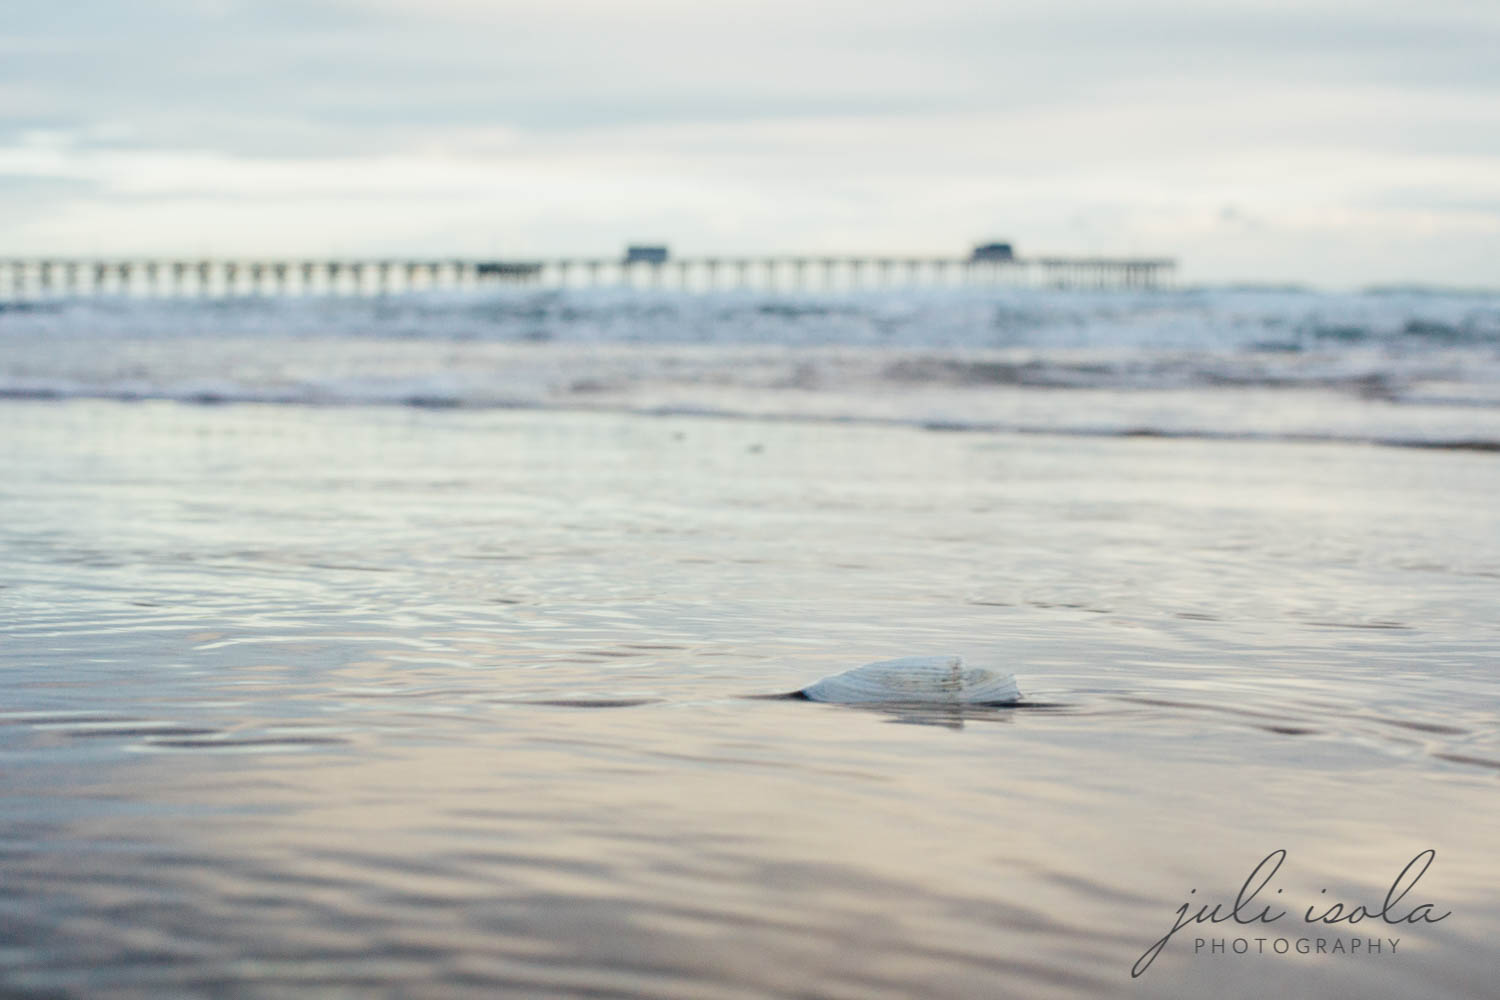 beach_nature_juliisolaphotography (19 of 20).jpg